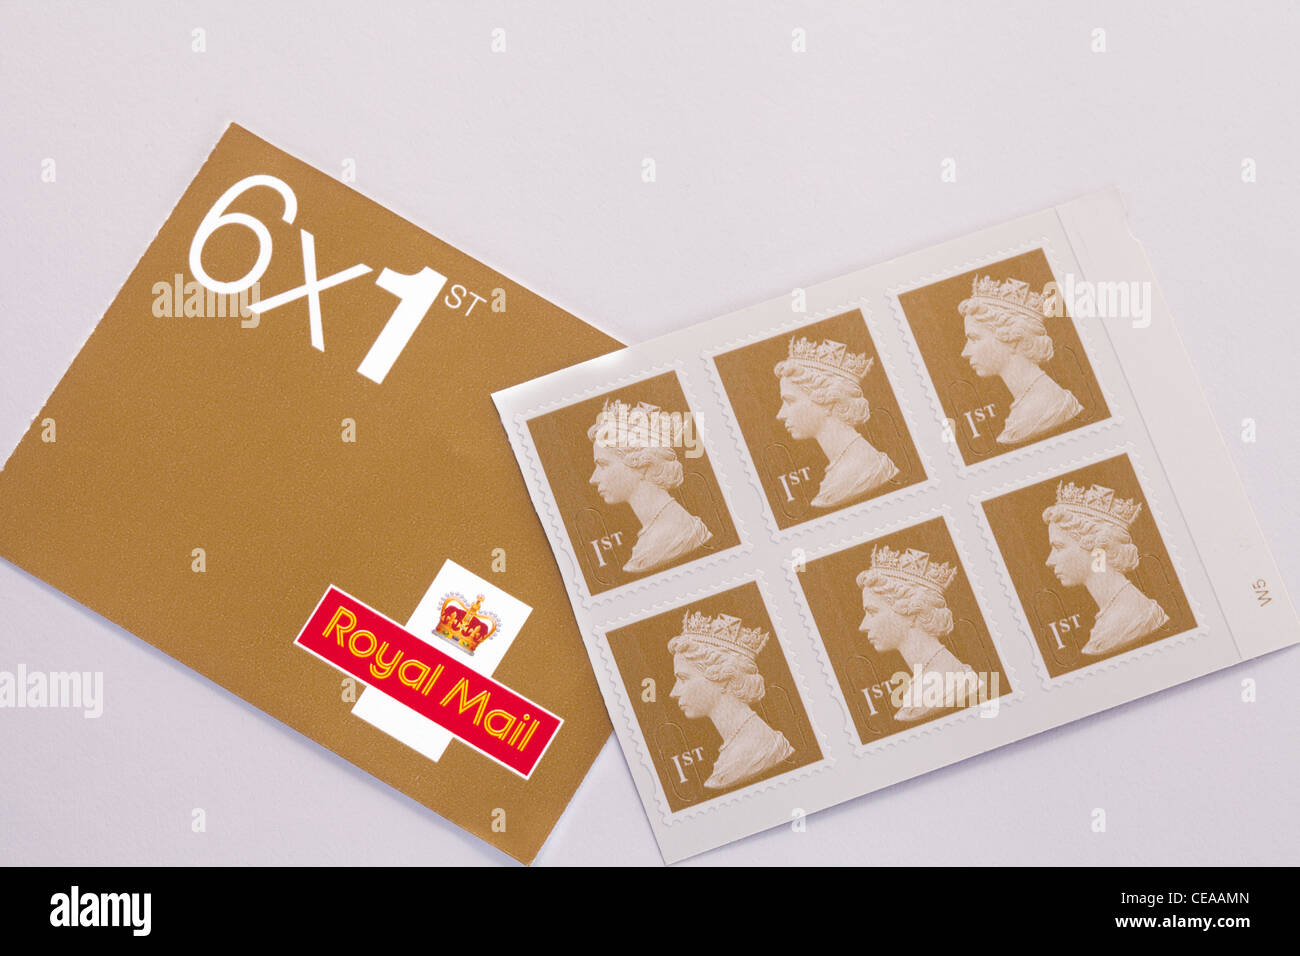 First class 1st class english postage stamps, UK - Stock Image